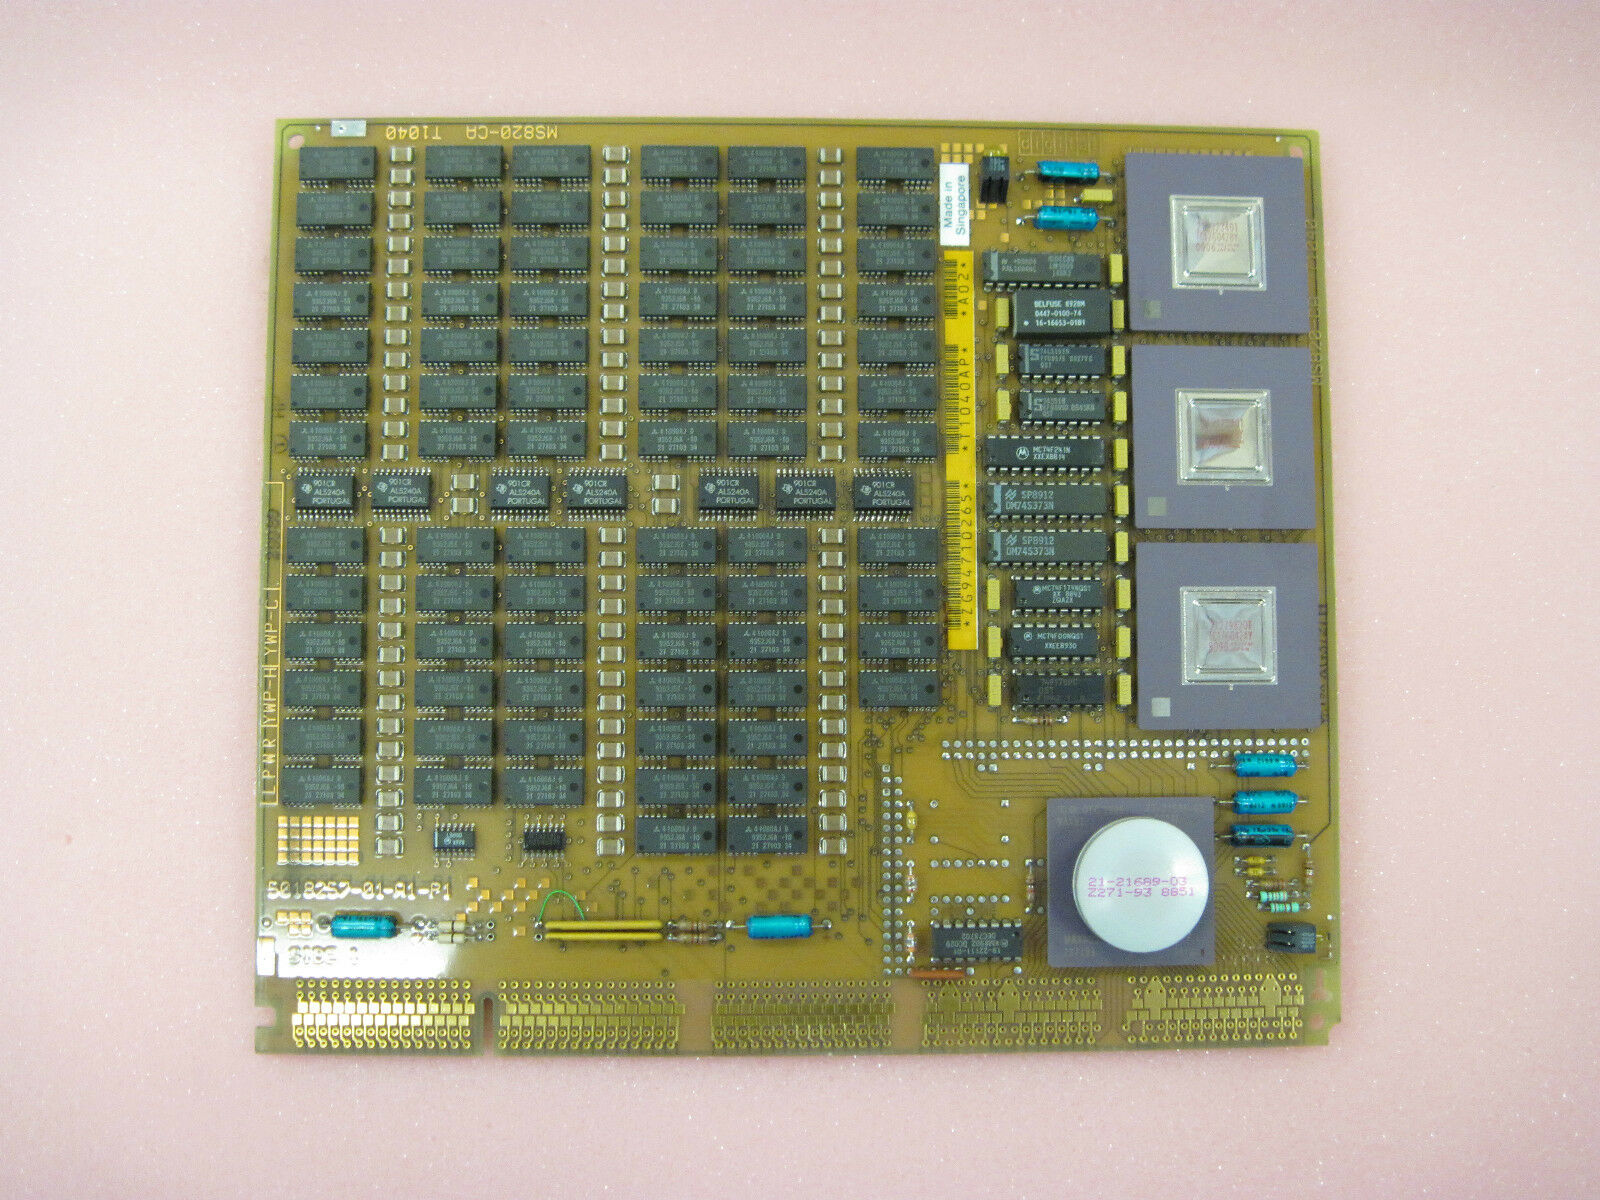 Dec T1040 16mb Memory Card Ms820 Ca 50182757 Ebay Side 5x7cm Printed Circuit Pcb Vero Prototyping Track Strip Board Uk Picture 1 Of 5